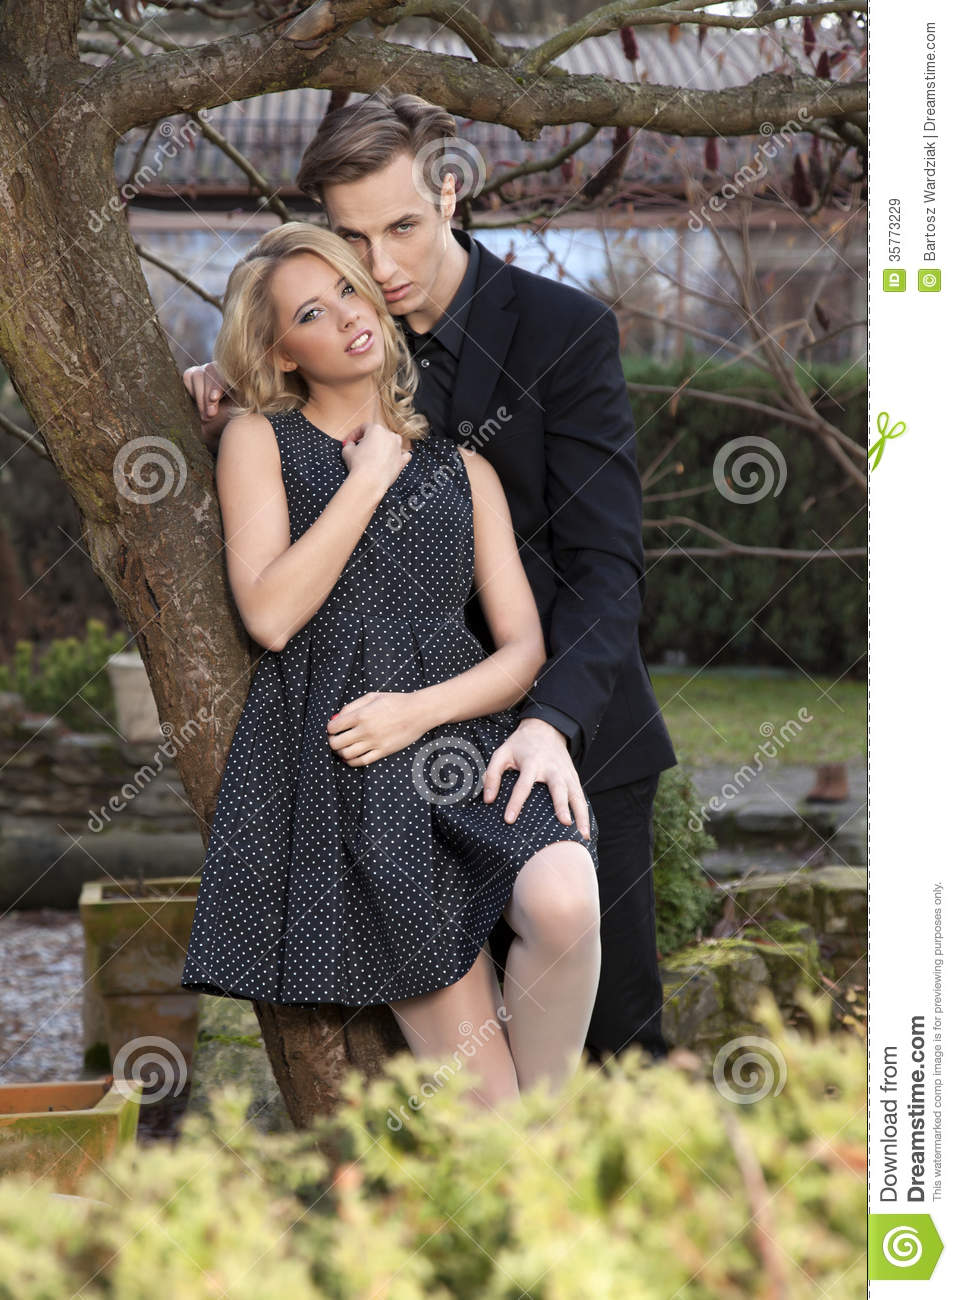 pornographic poses for couples